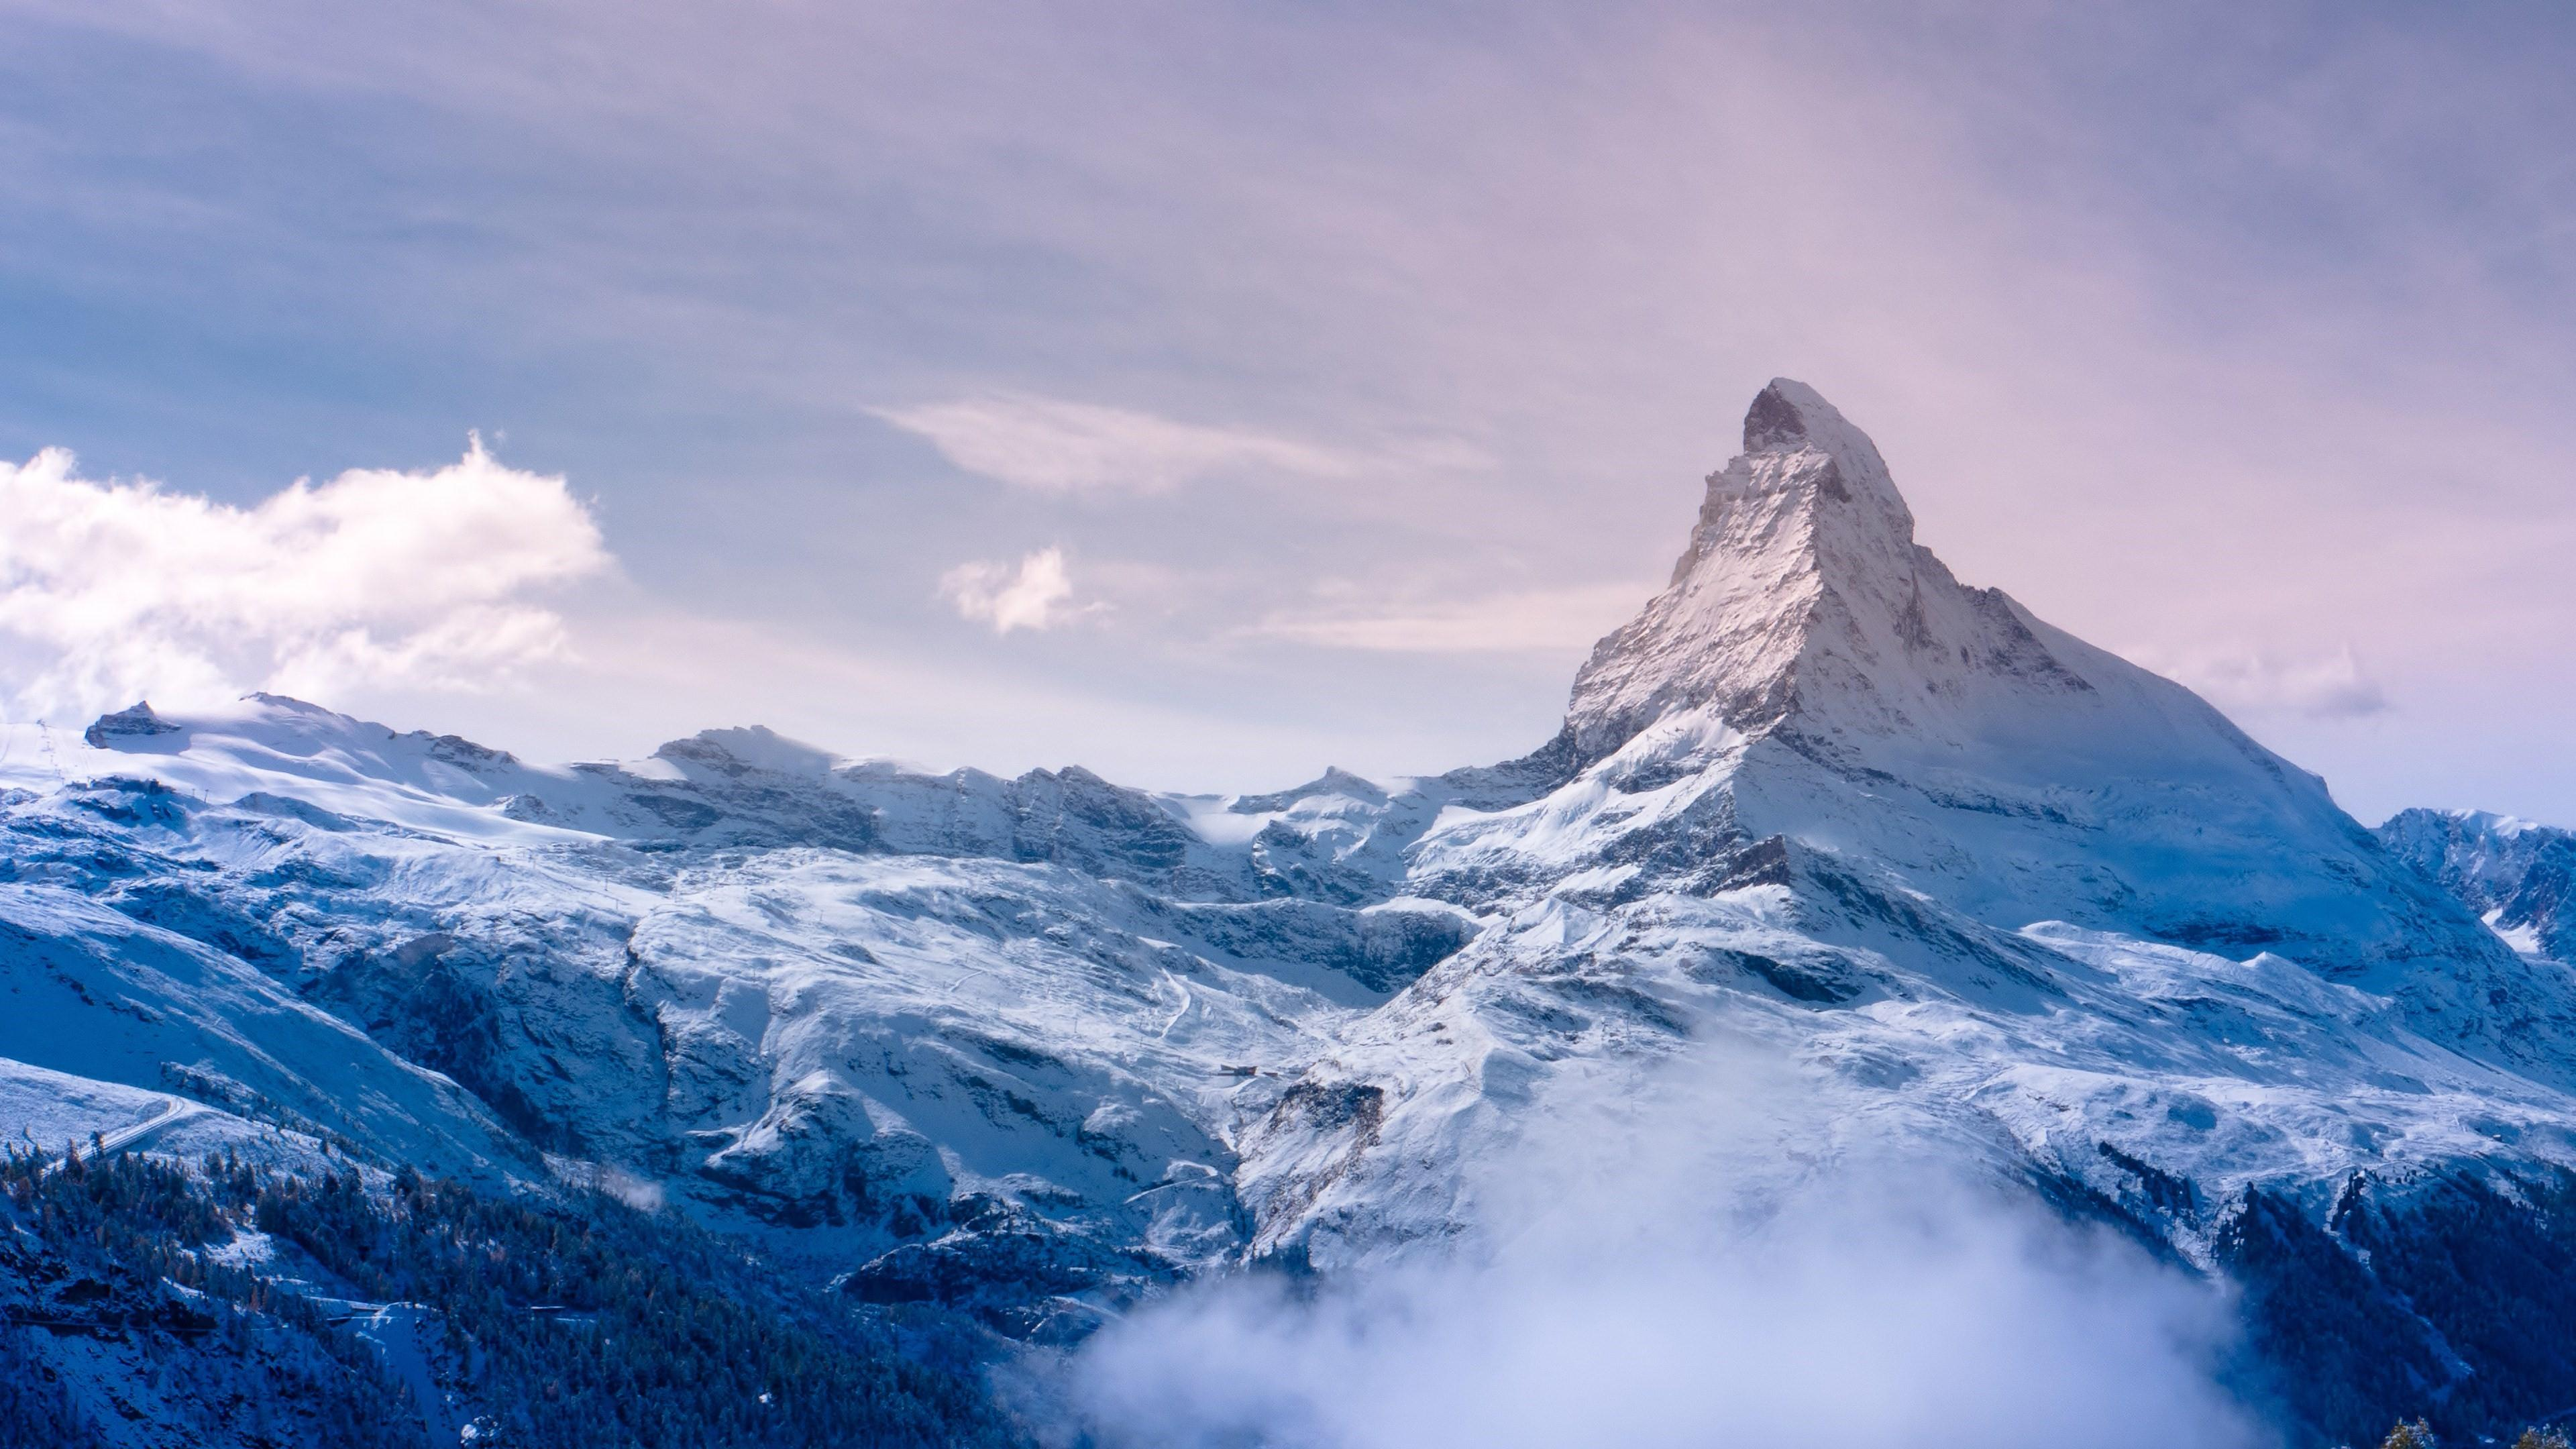 Matterhorn - Switzerland wallpaper